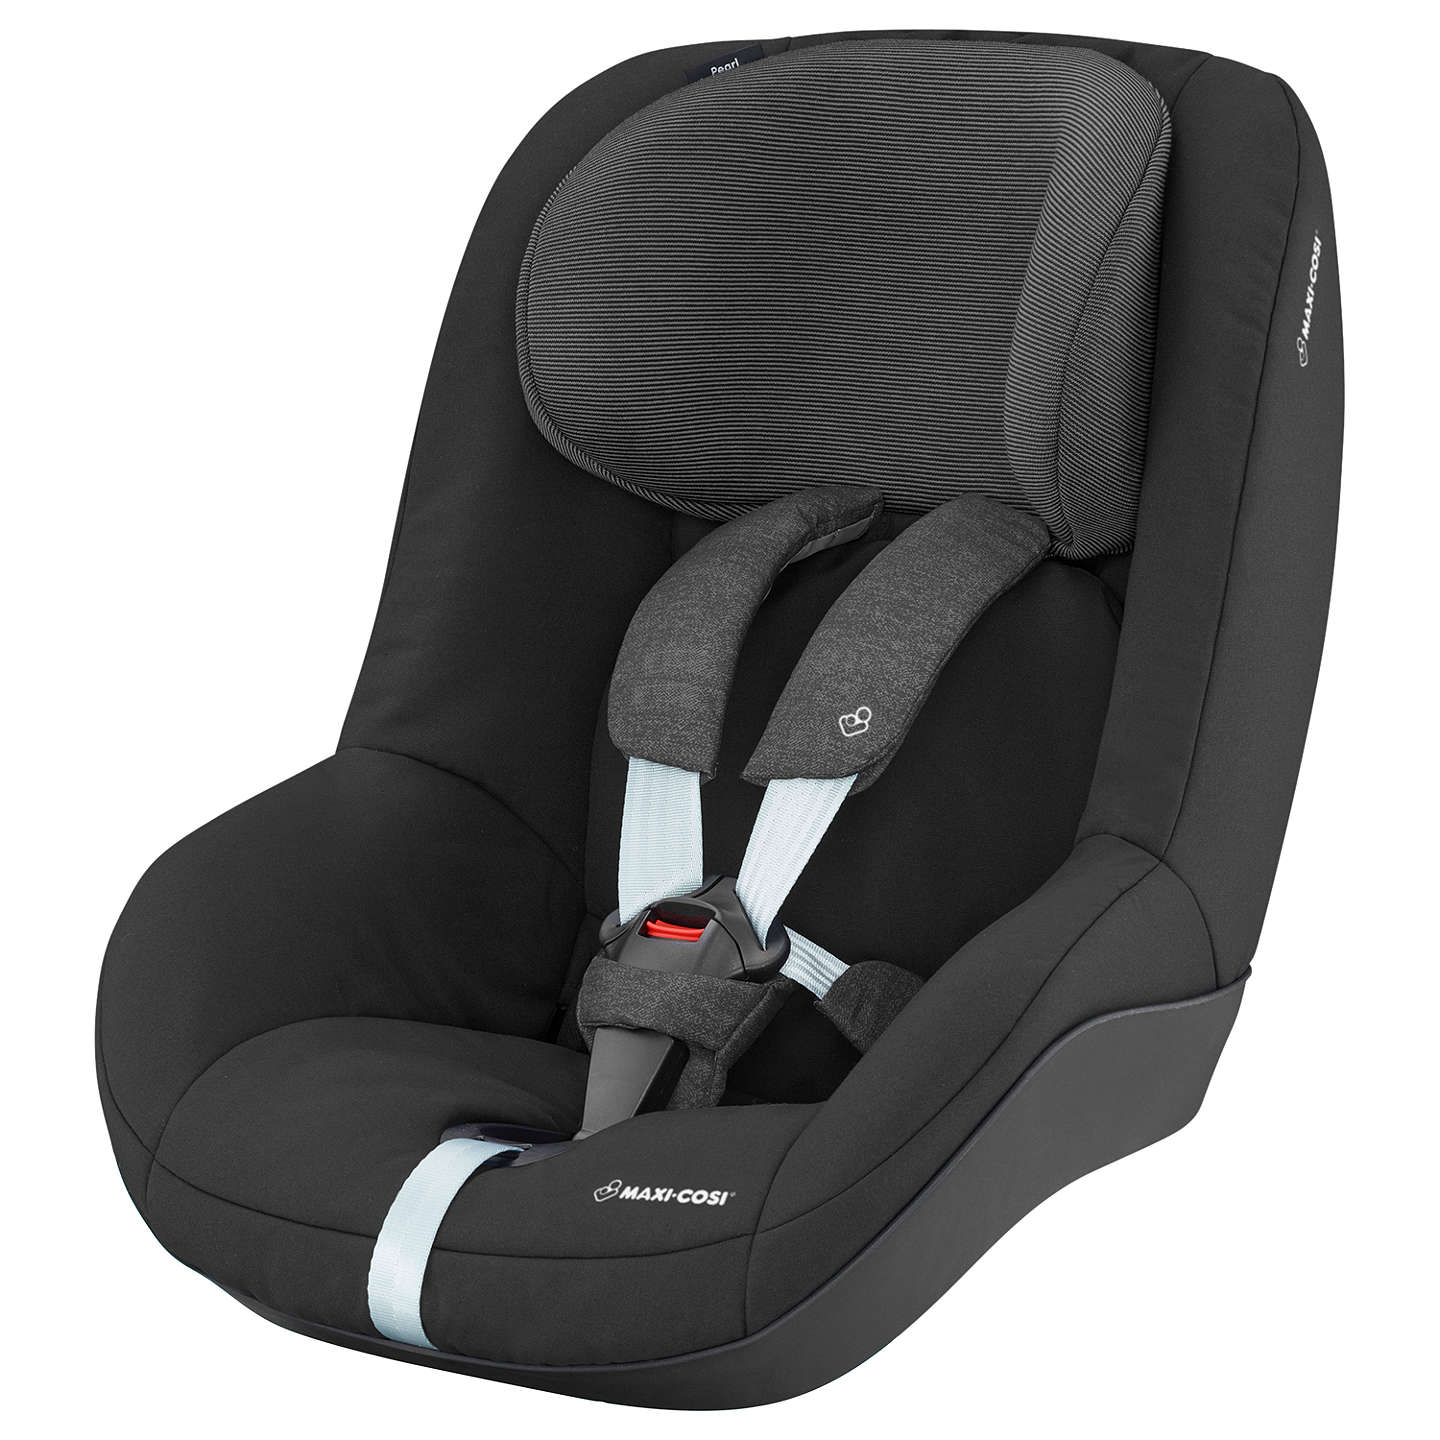 maxi cosi pearl group 1 car seat nomad black at john lewis. Black Bedroom Furniture Sets. Home Design Ideas